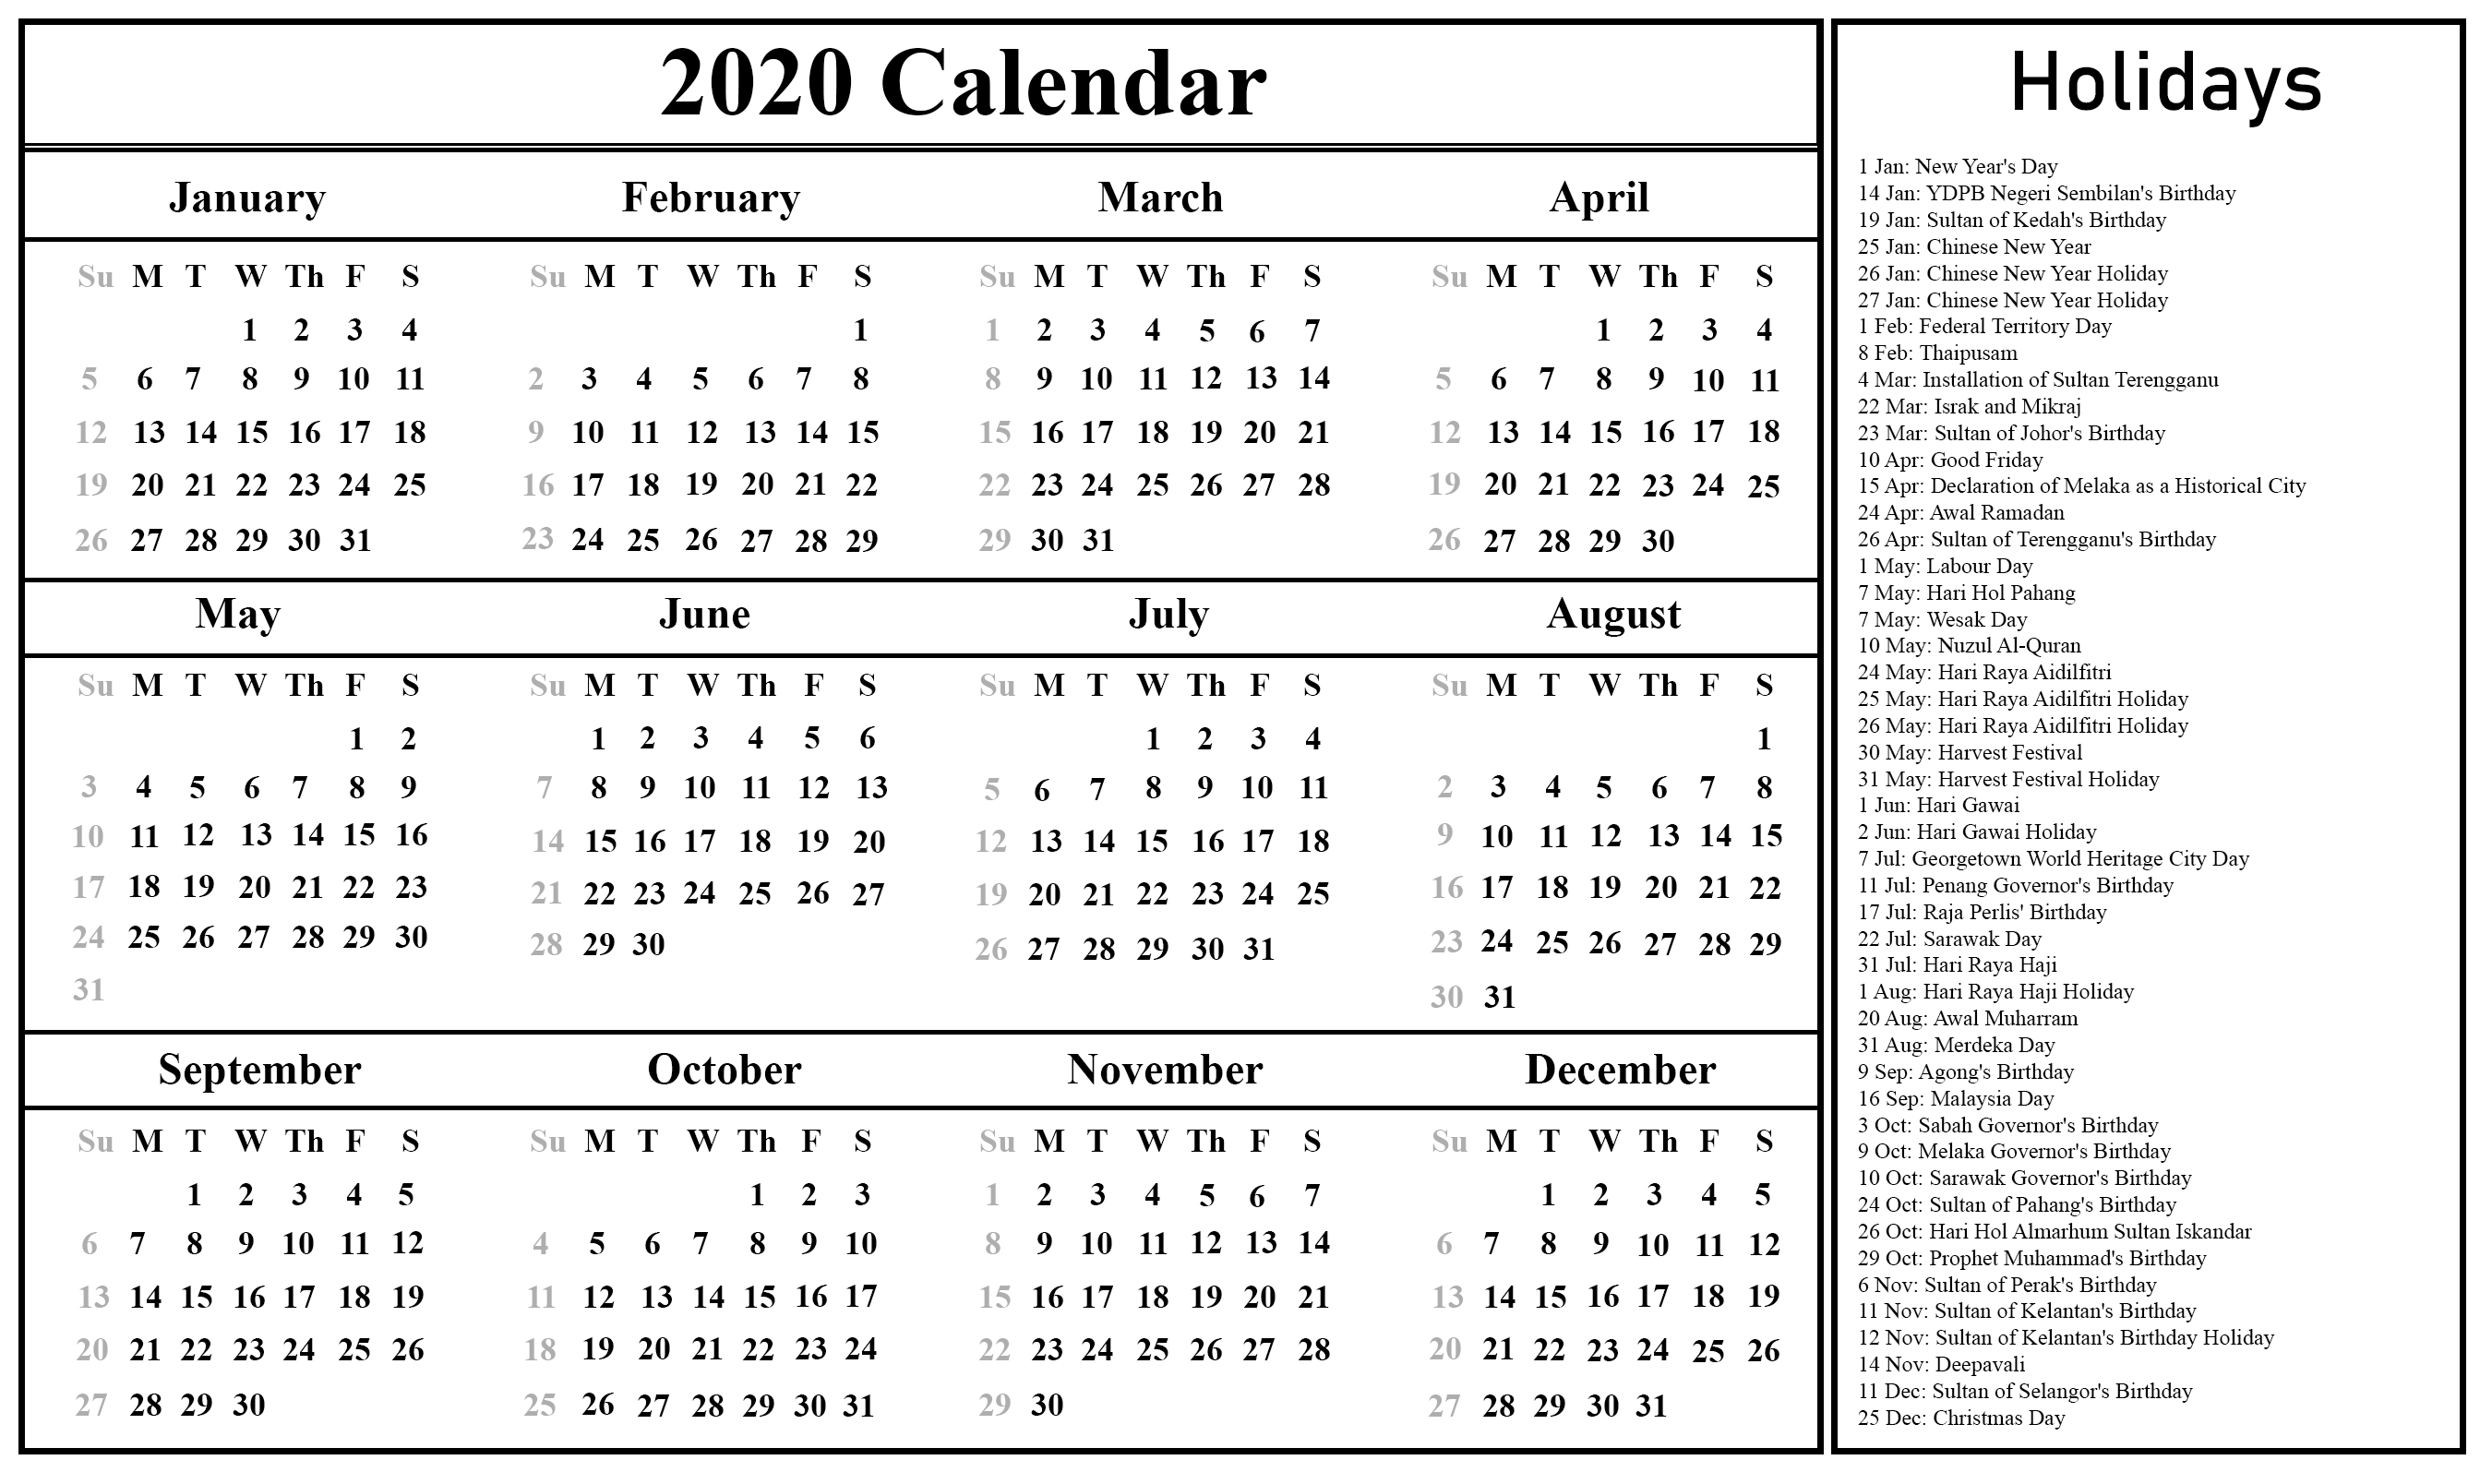 Public Holidays In Malaysia 2020 | Printable July Calendar-Calender With Public Holidays